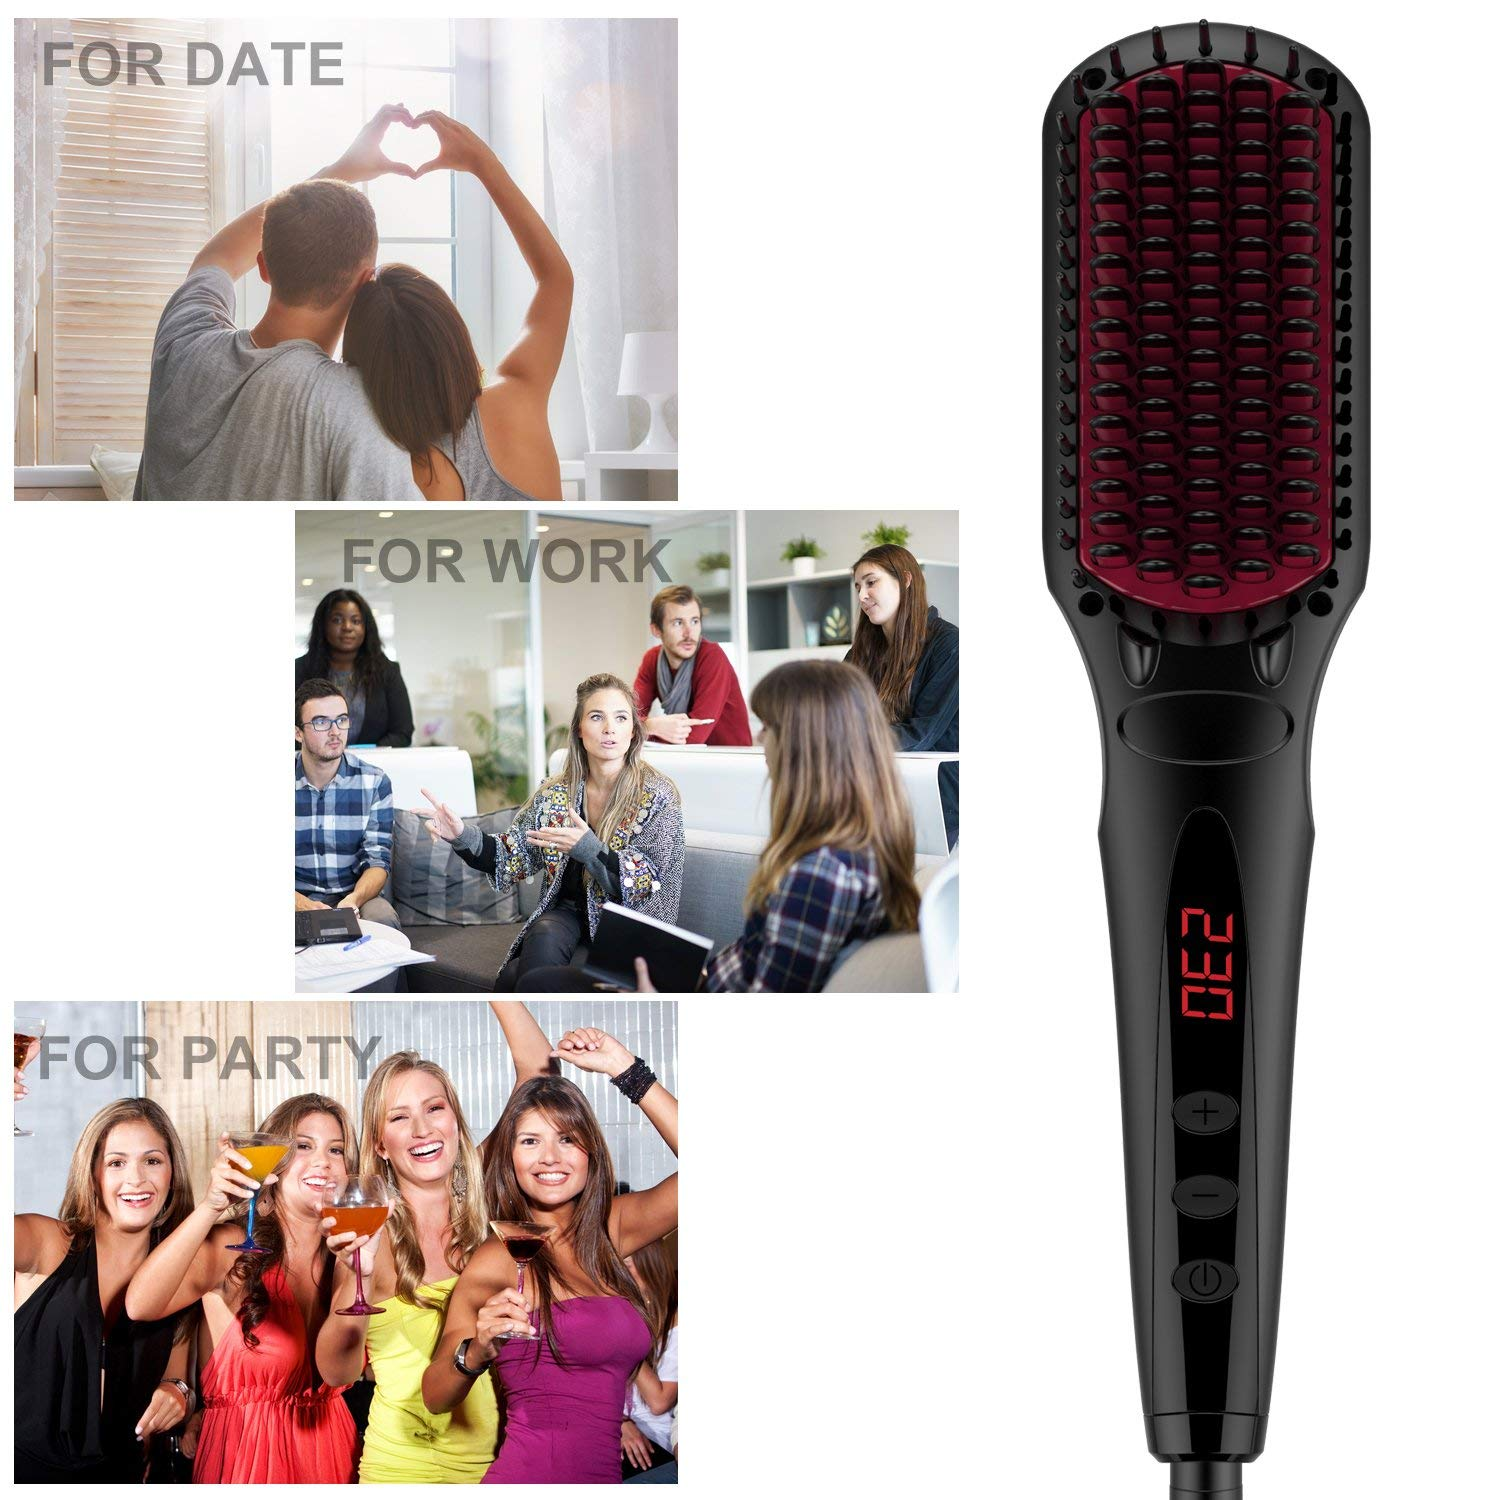 Enhanced Hair Straightener Brush by MiroPure, 2-in-1 Ionic Straightening Brush with Anti-Scald Feature, Auto Temperature Lock and Auto-off Function (Black) by MiroPure (Image #9)